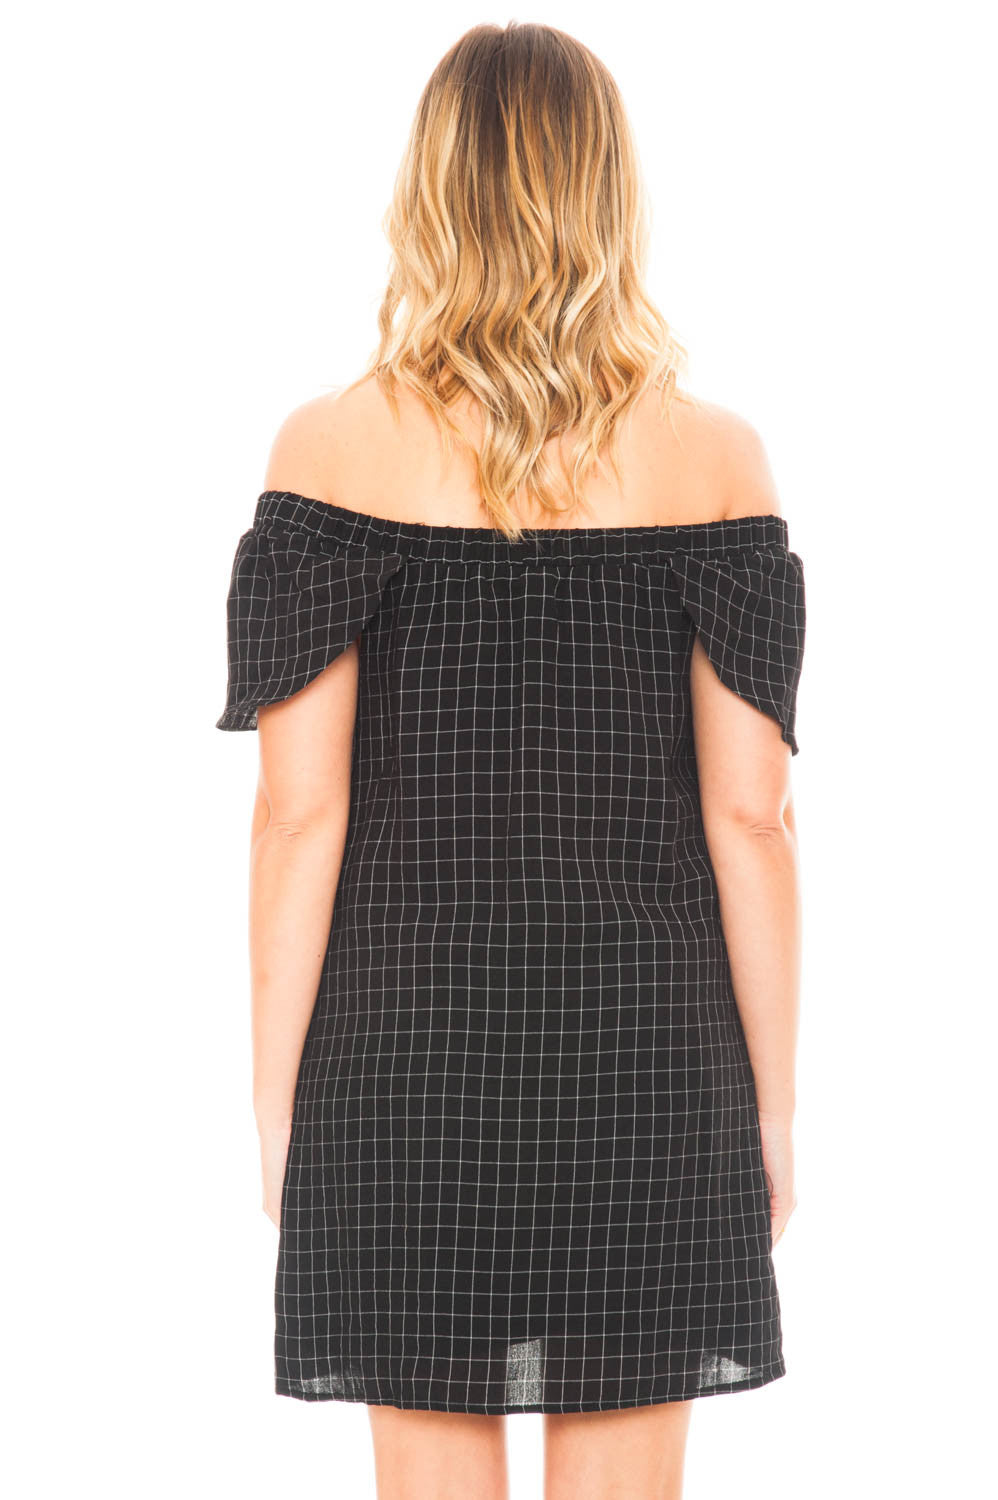 Dress - Off Shoulder Checkered Dress with Pockets